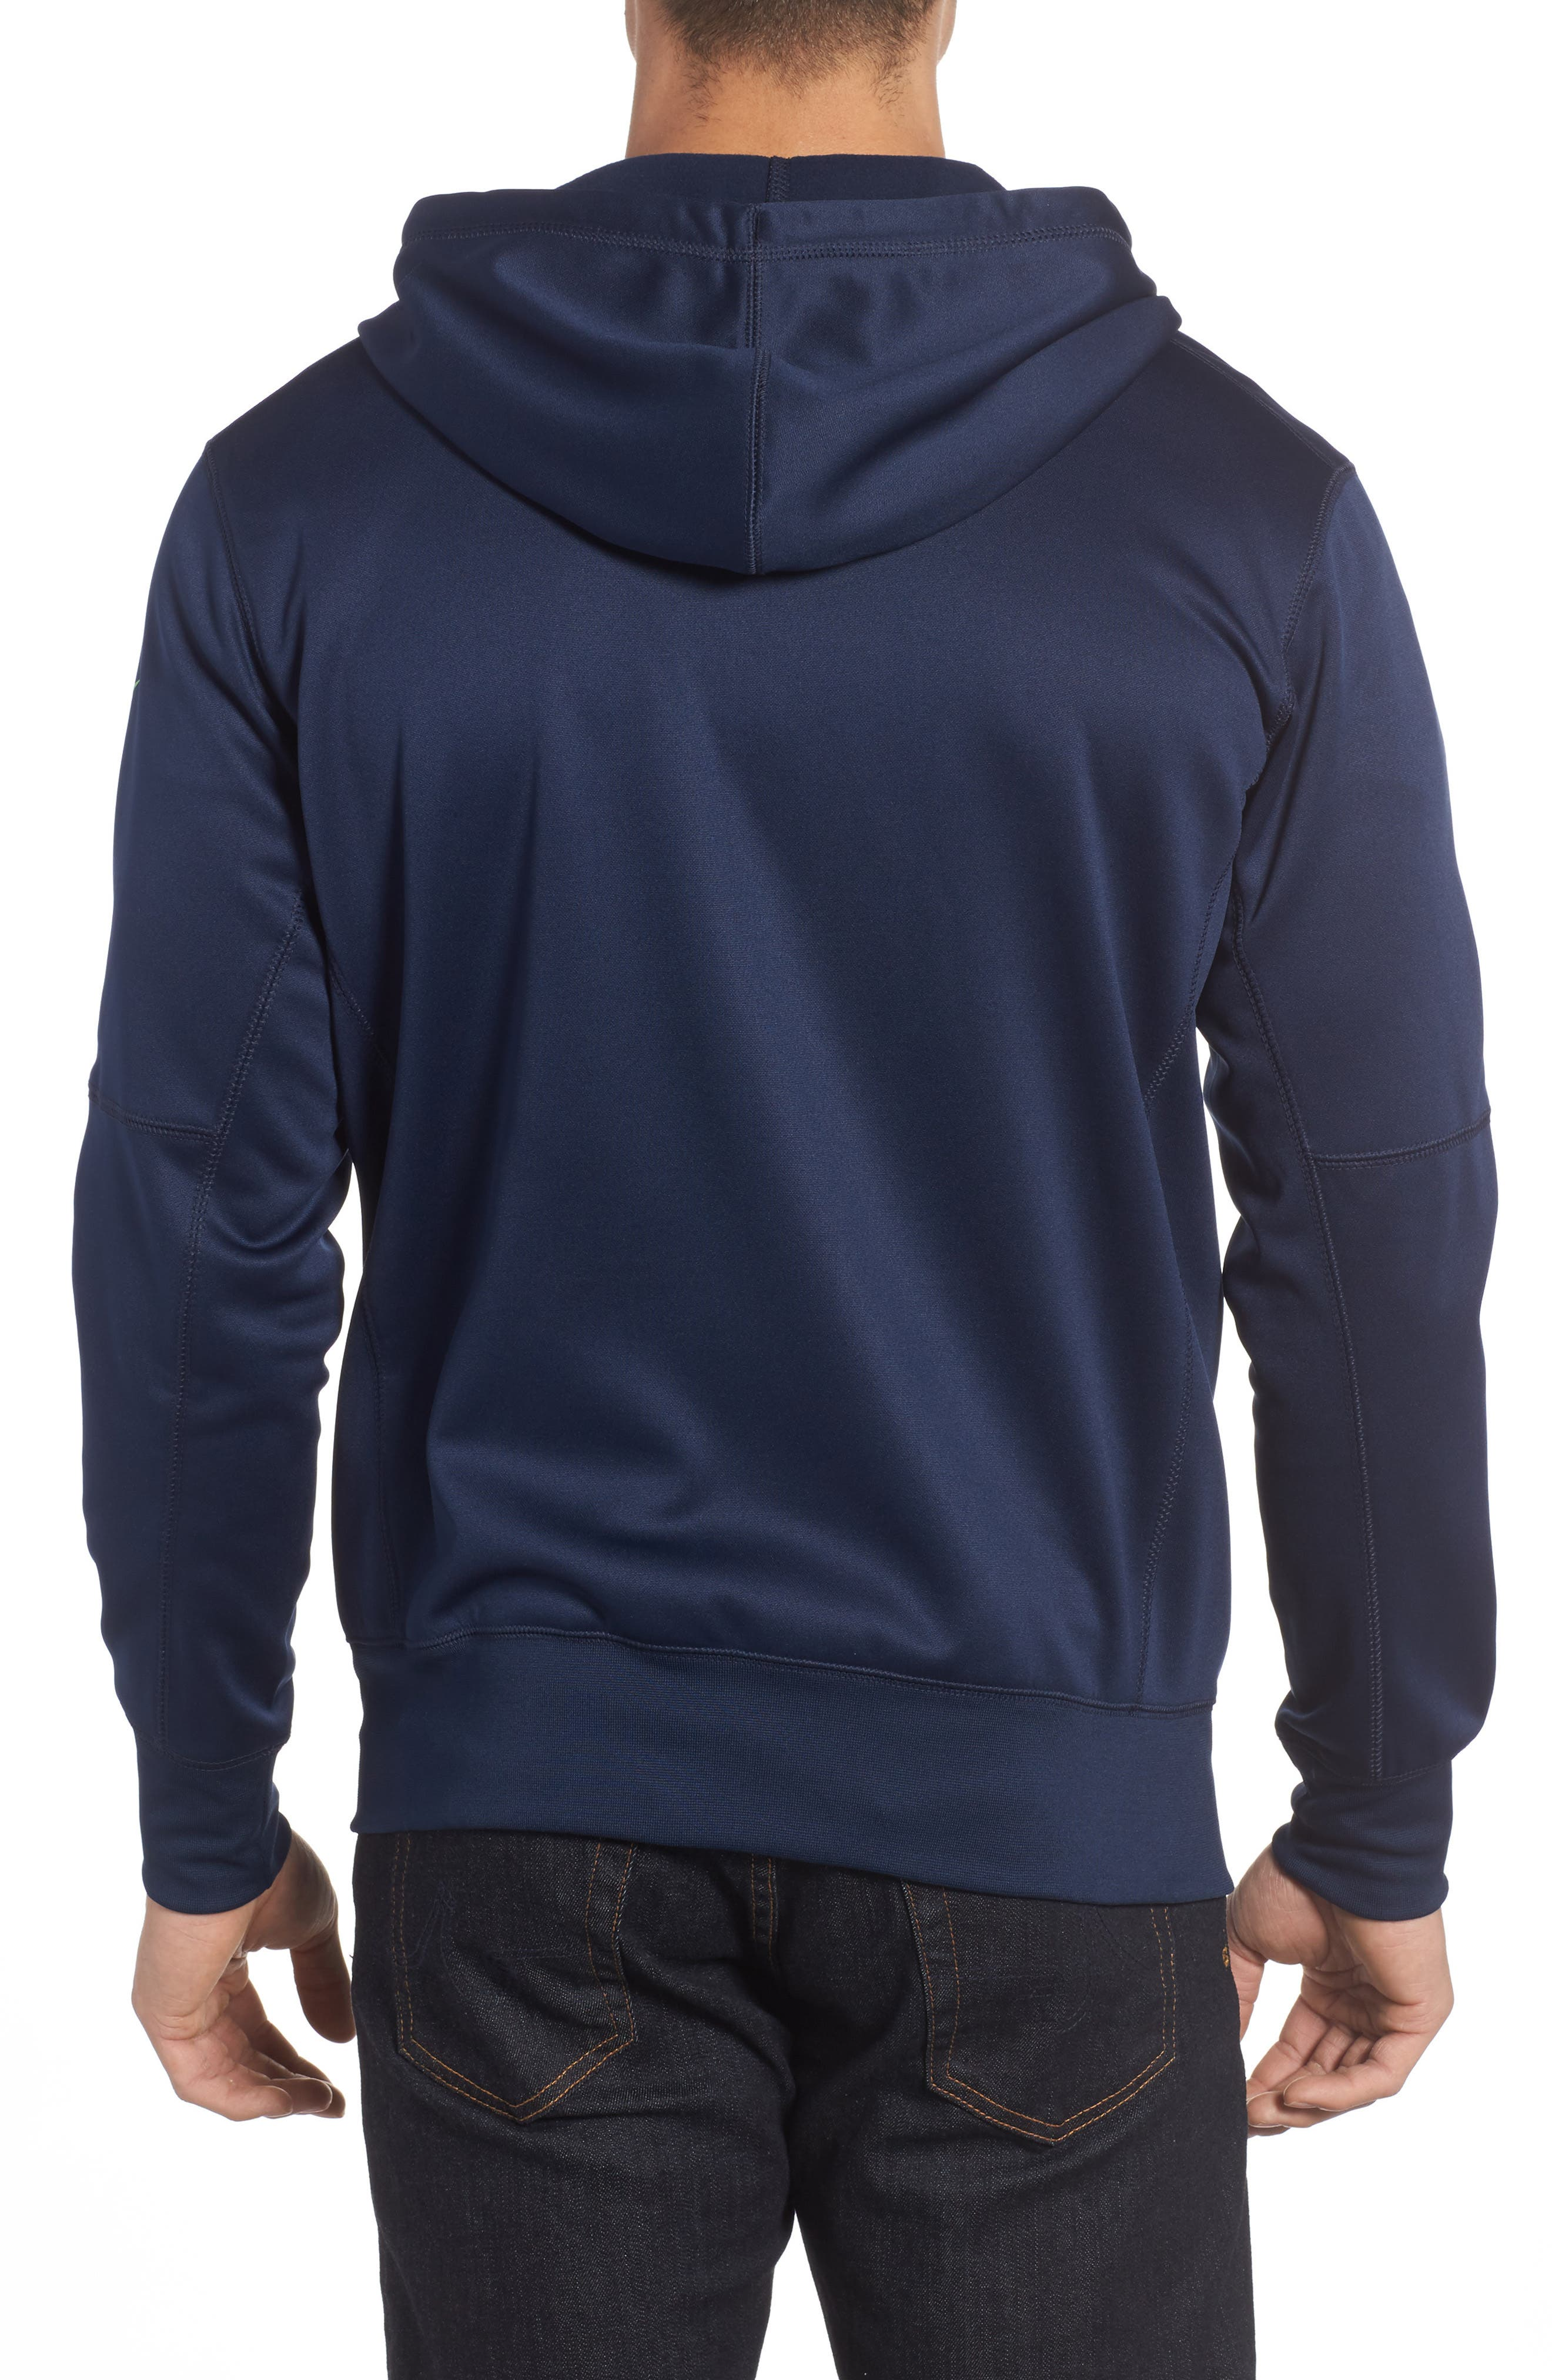 Therma-FIT NFL Graphic Zip Hoodie,                             Alternate thumbnail 13, color,